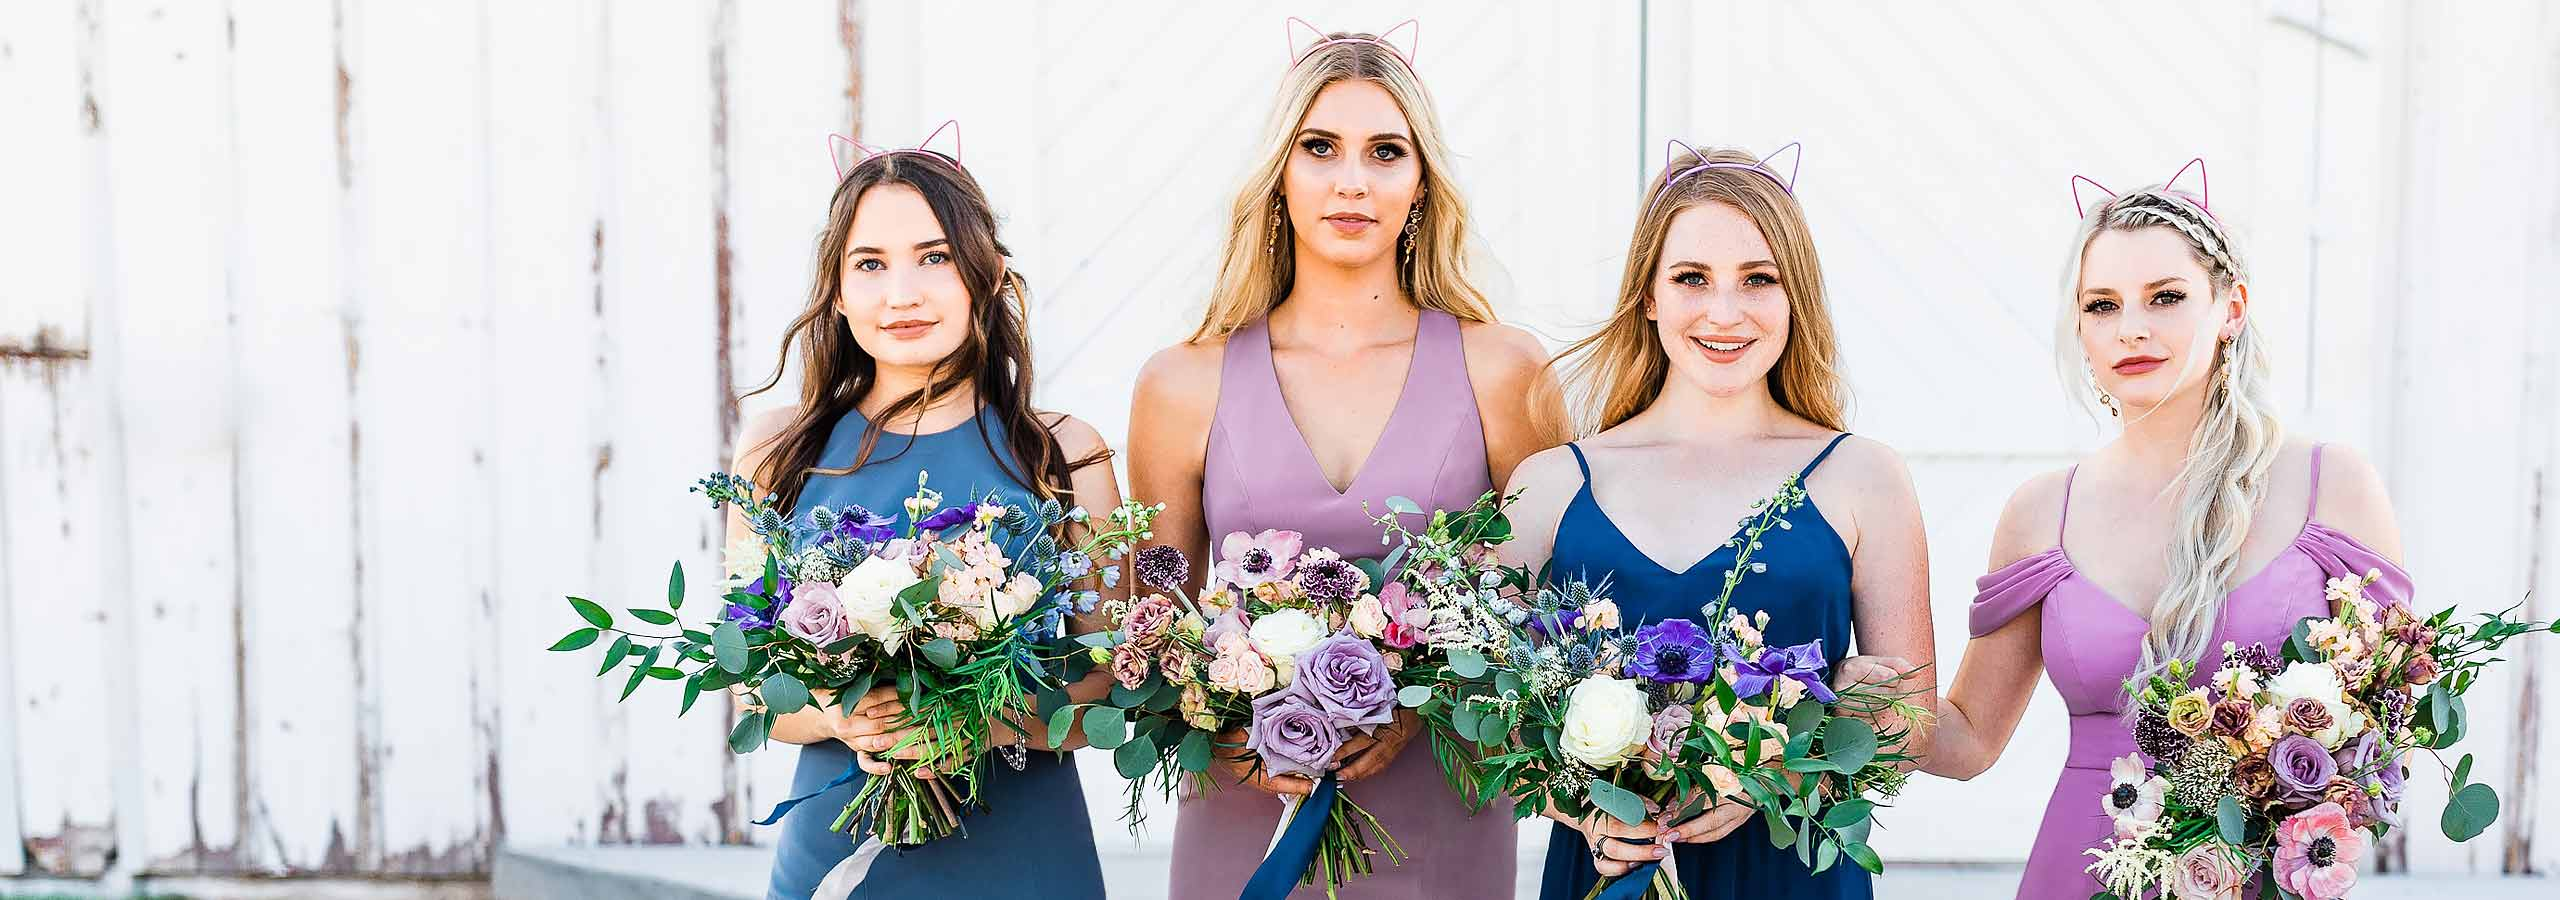 Chic, Affordable Bridesmaid Dresses - The Dessy Group & The Wedding Chicks